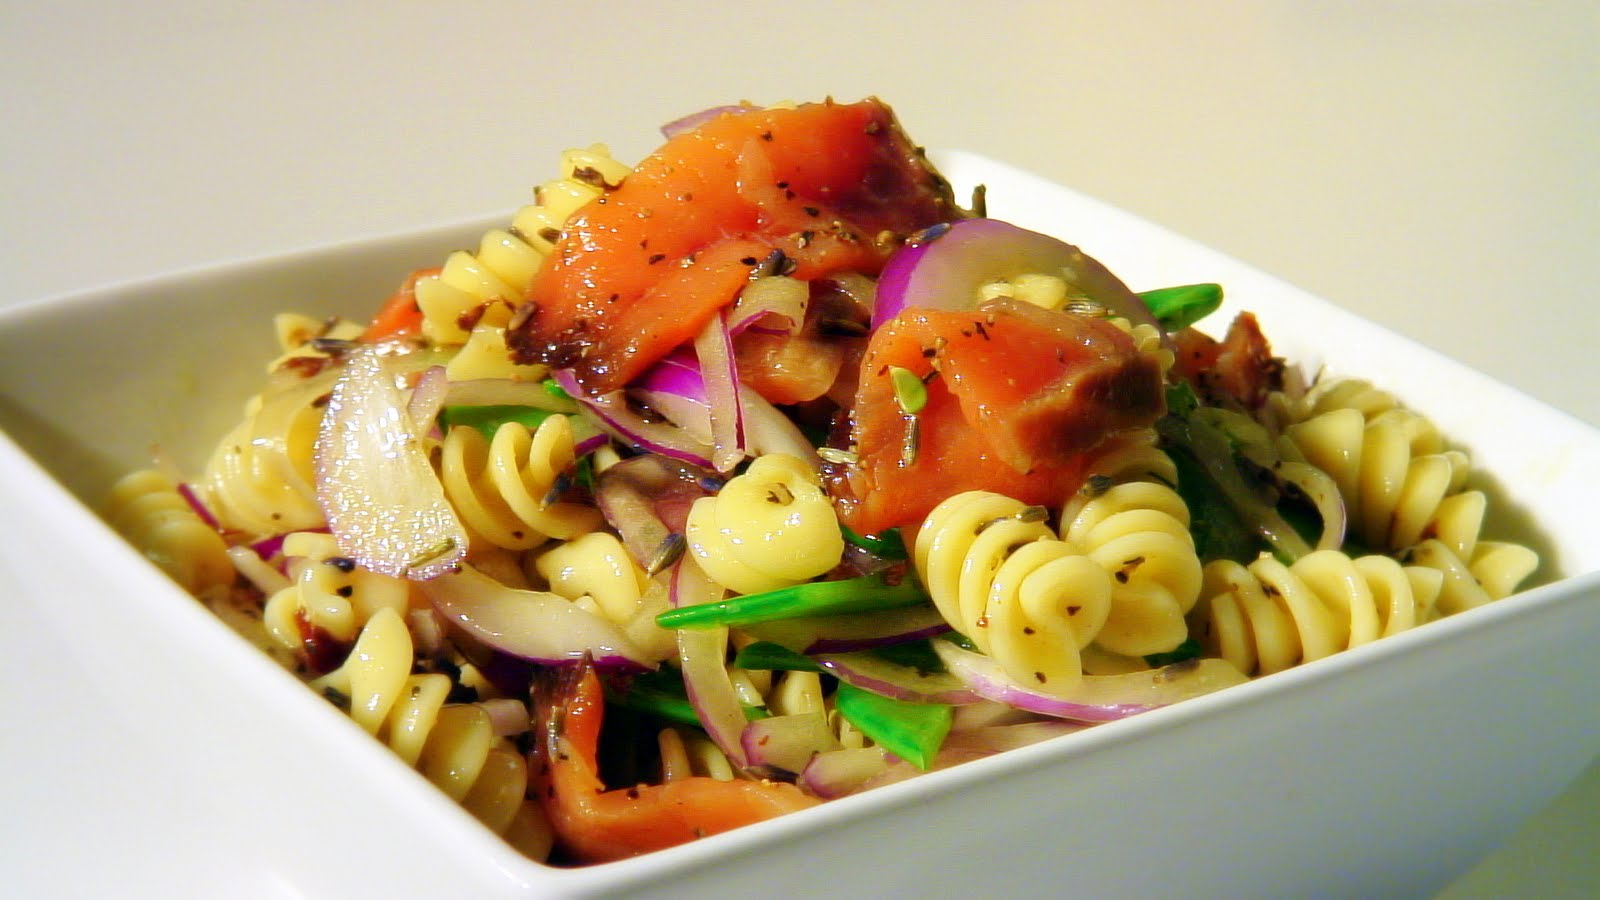 Edible Menu: Pasta Salad w/ Snow Peas, Smoked Salmon, & Lavender